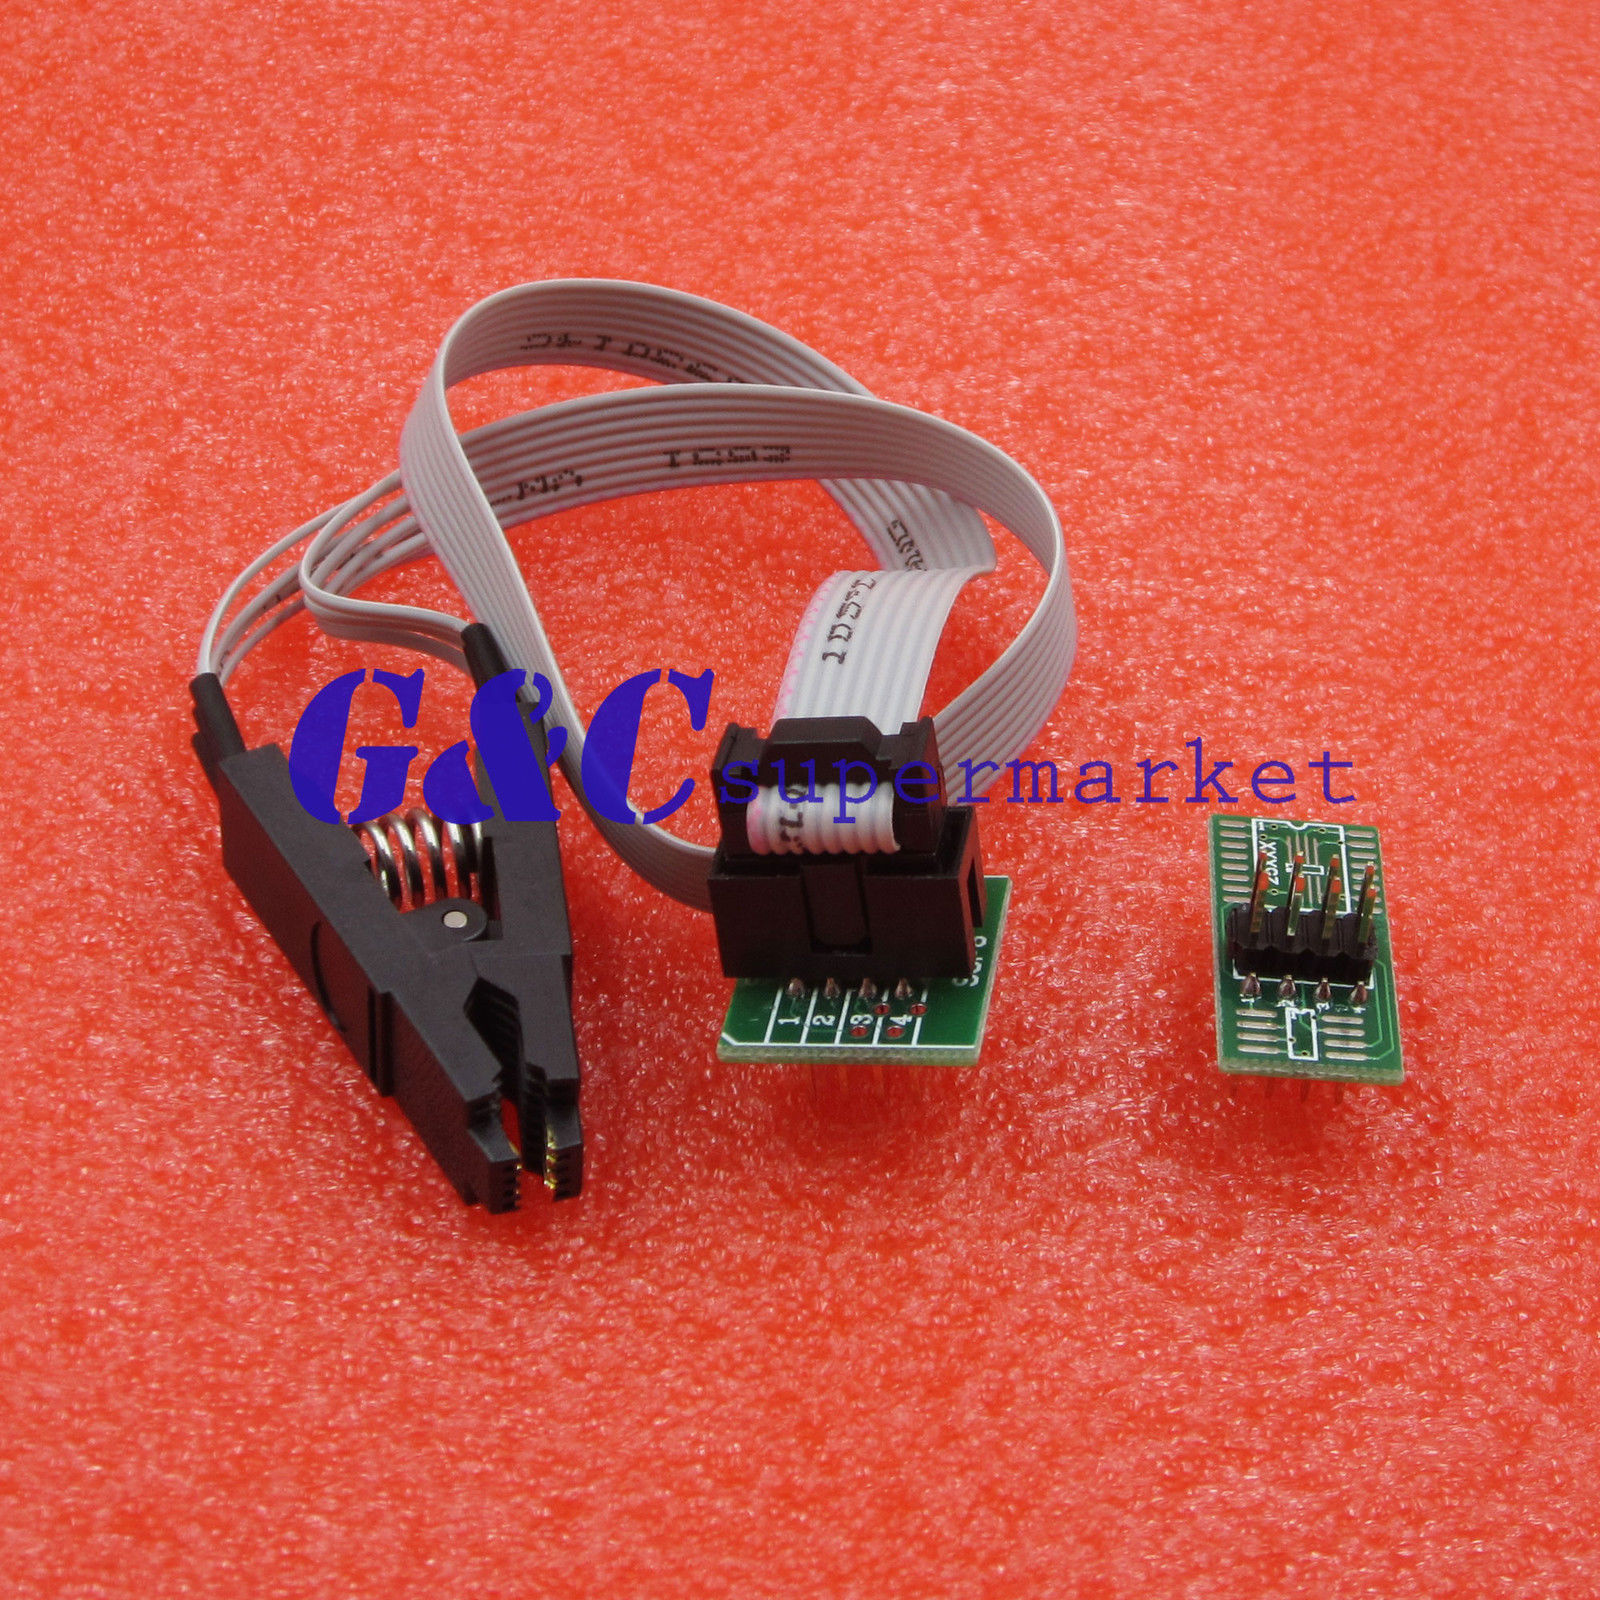 $3 91 - Soic8 Sop8 Test Clip For Eeprom 93/25 /24Cx In